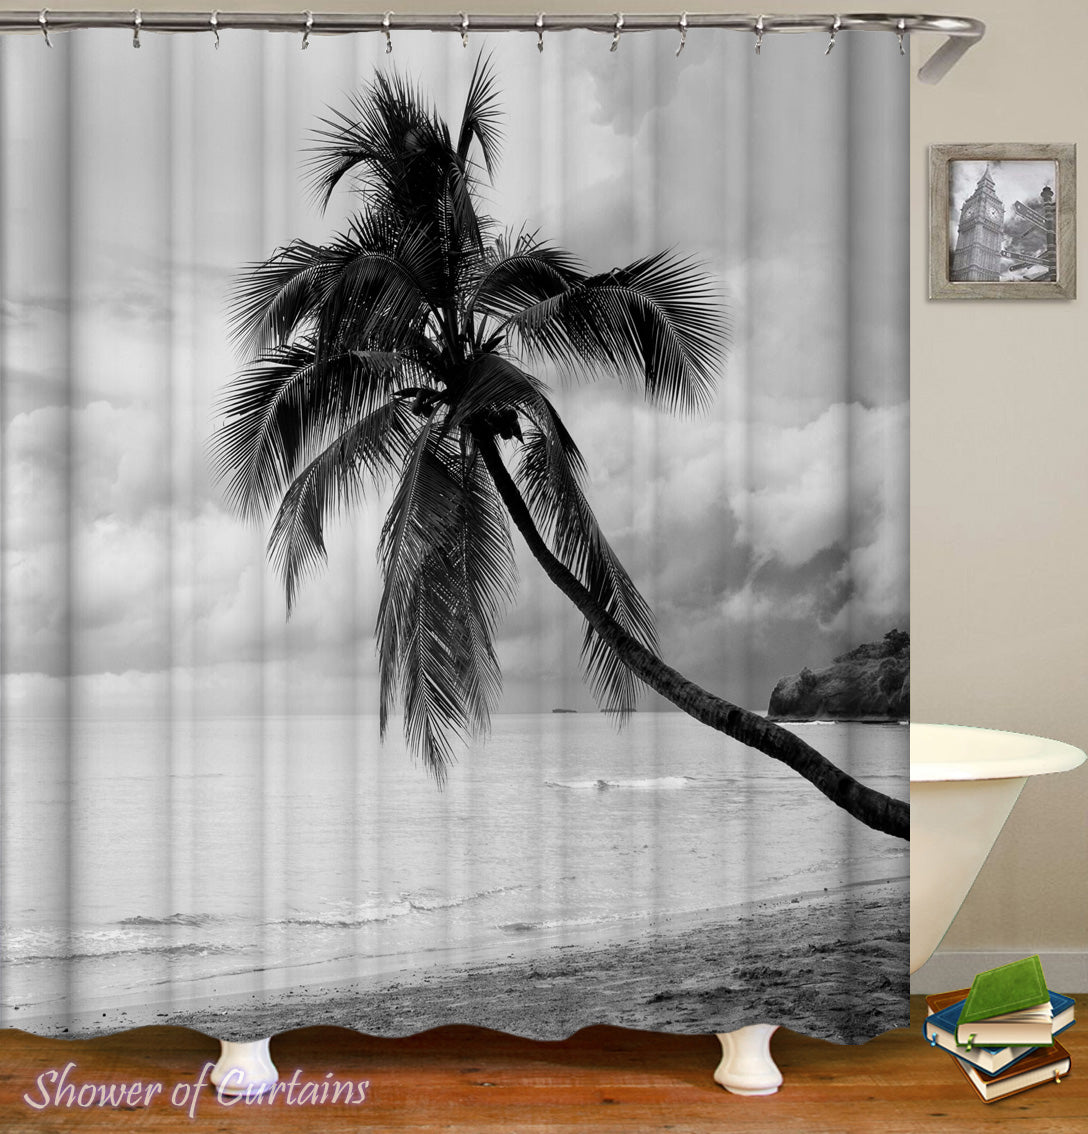 Shower Curtains Black And White Coconut Tree Shower Of Curtains